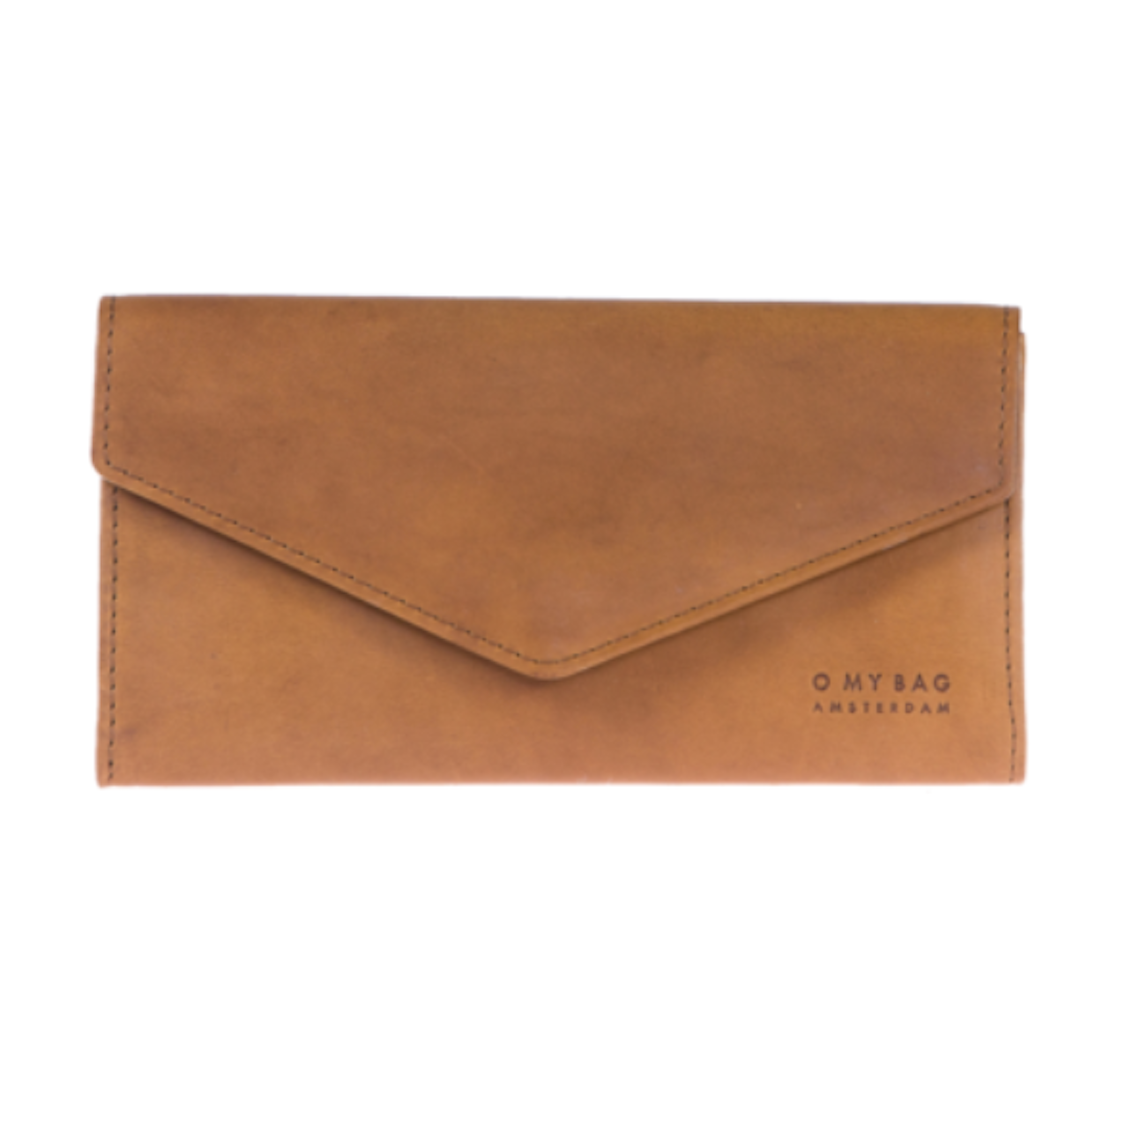 OMB Enveloppe Pixie Pouch Cognac Classic Leather